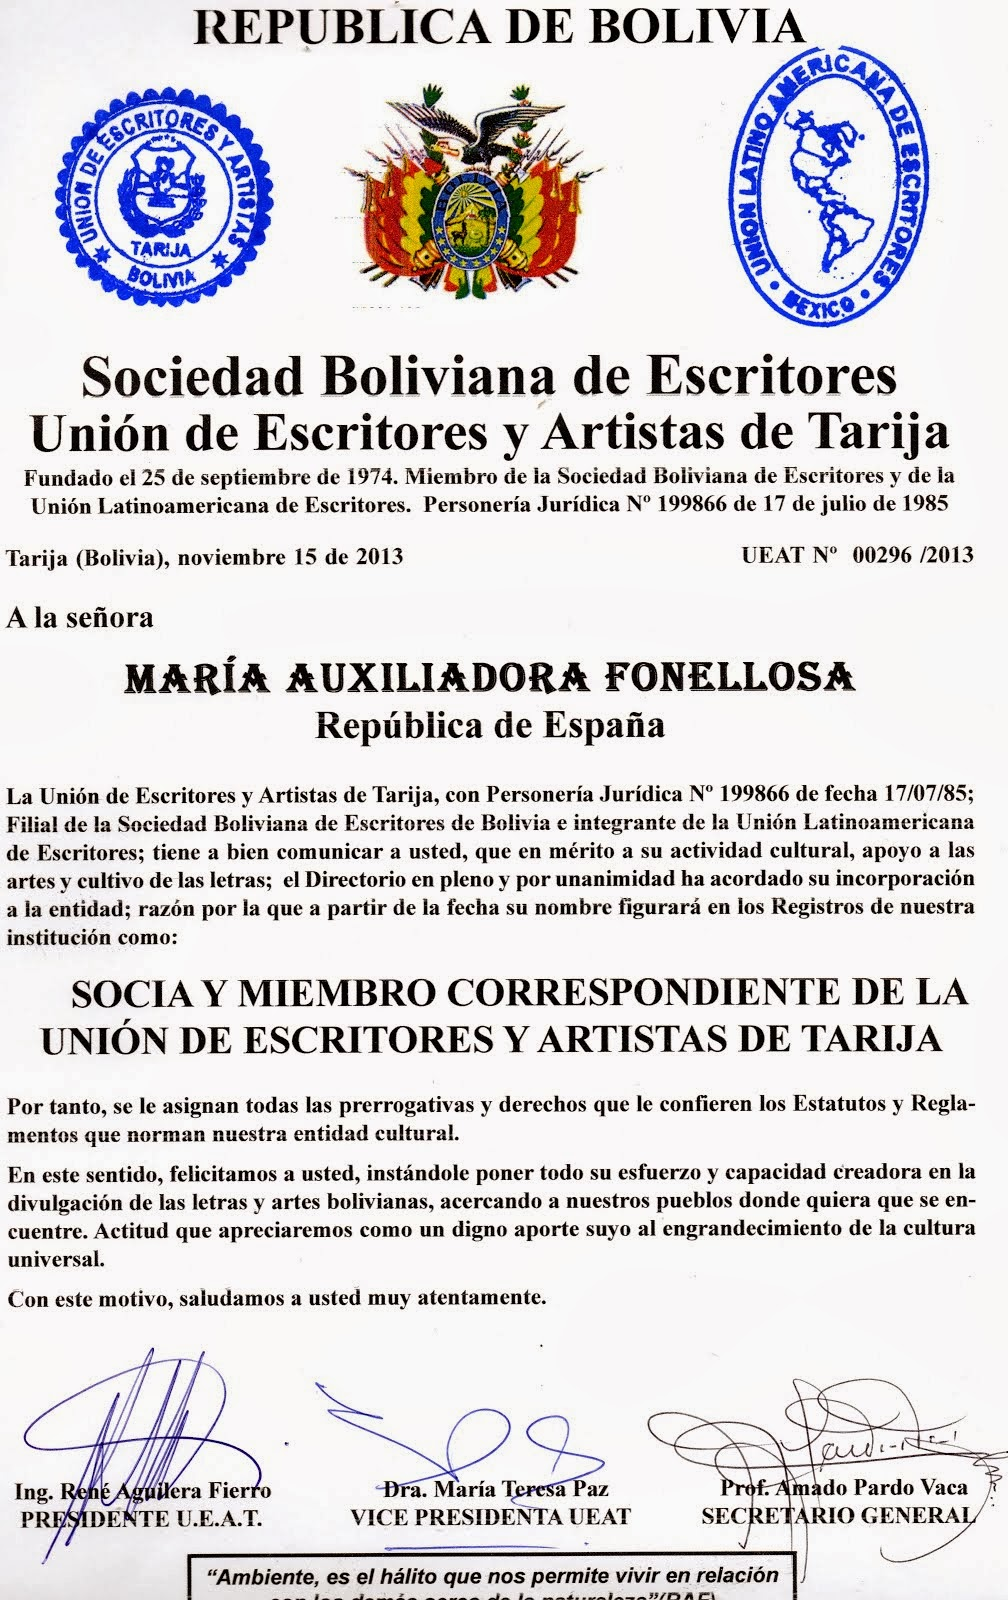 SOCIA DE LA UNIÓN DE ESCRITORES DE TARIJA (BOLIVIA)